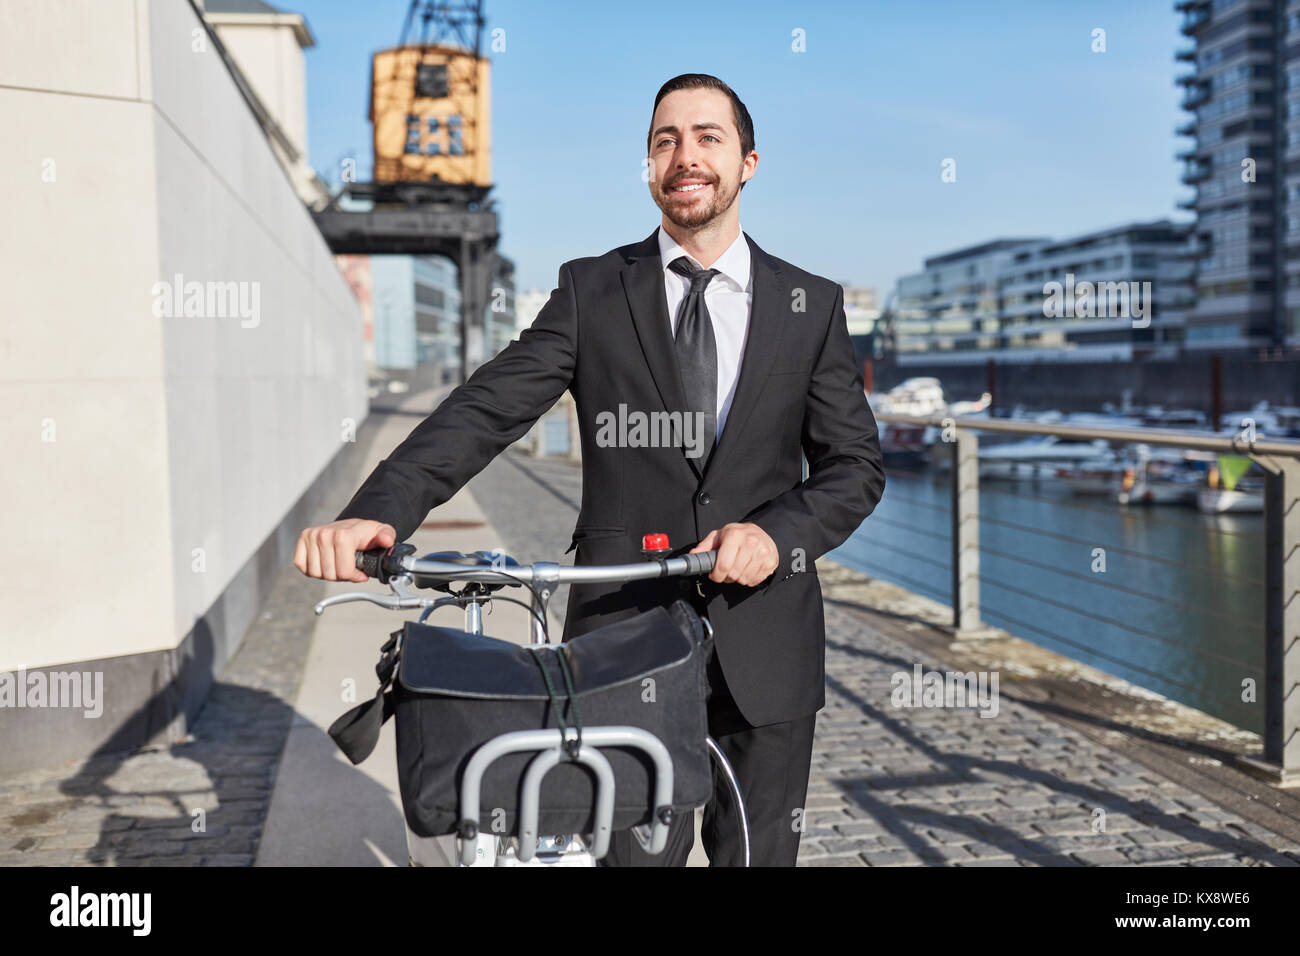 Eco-friendly startup entrepreneur pushes a bike through the city - Stock Image